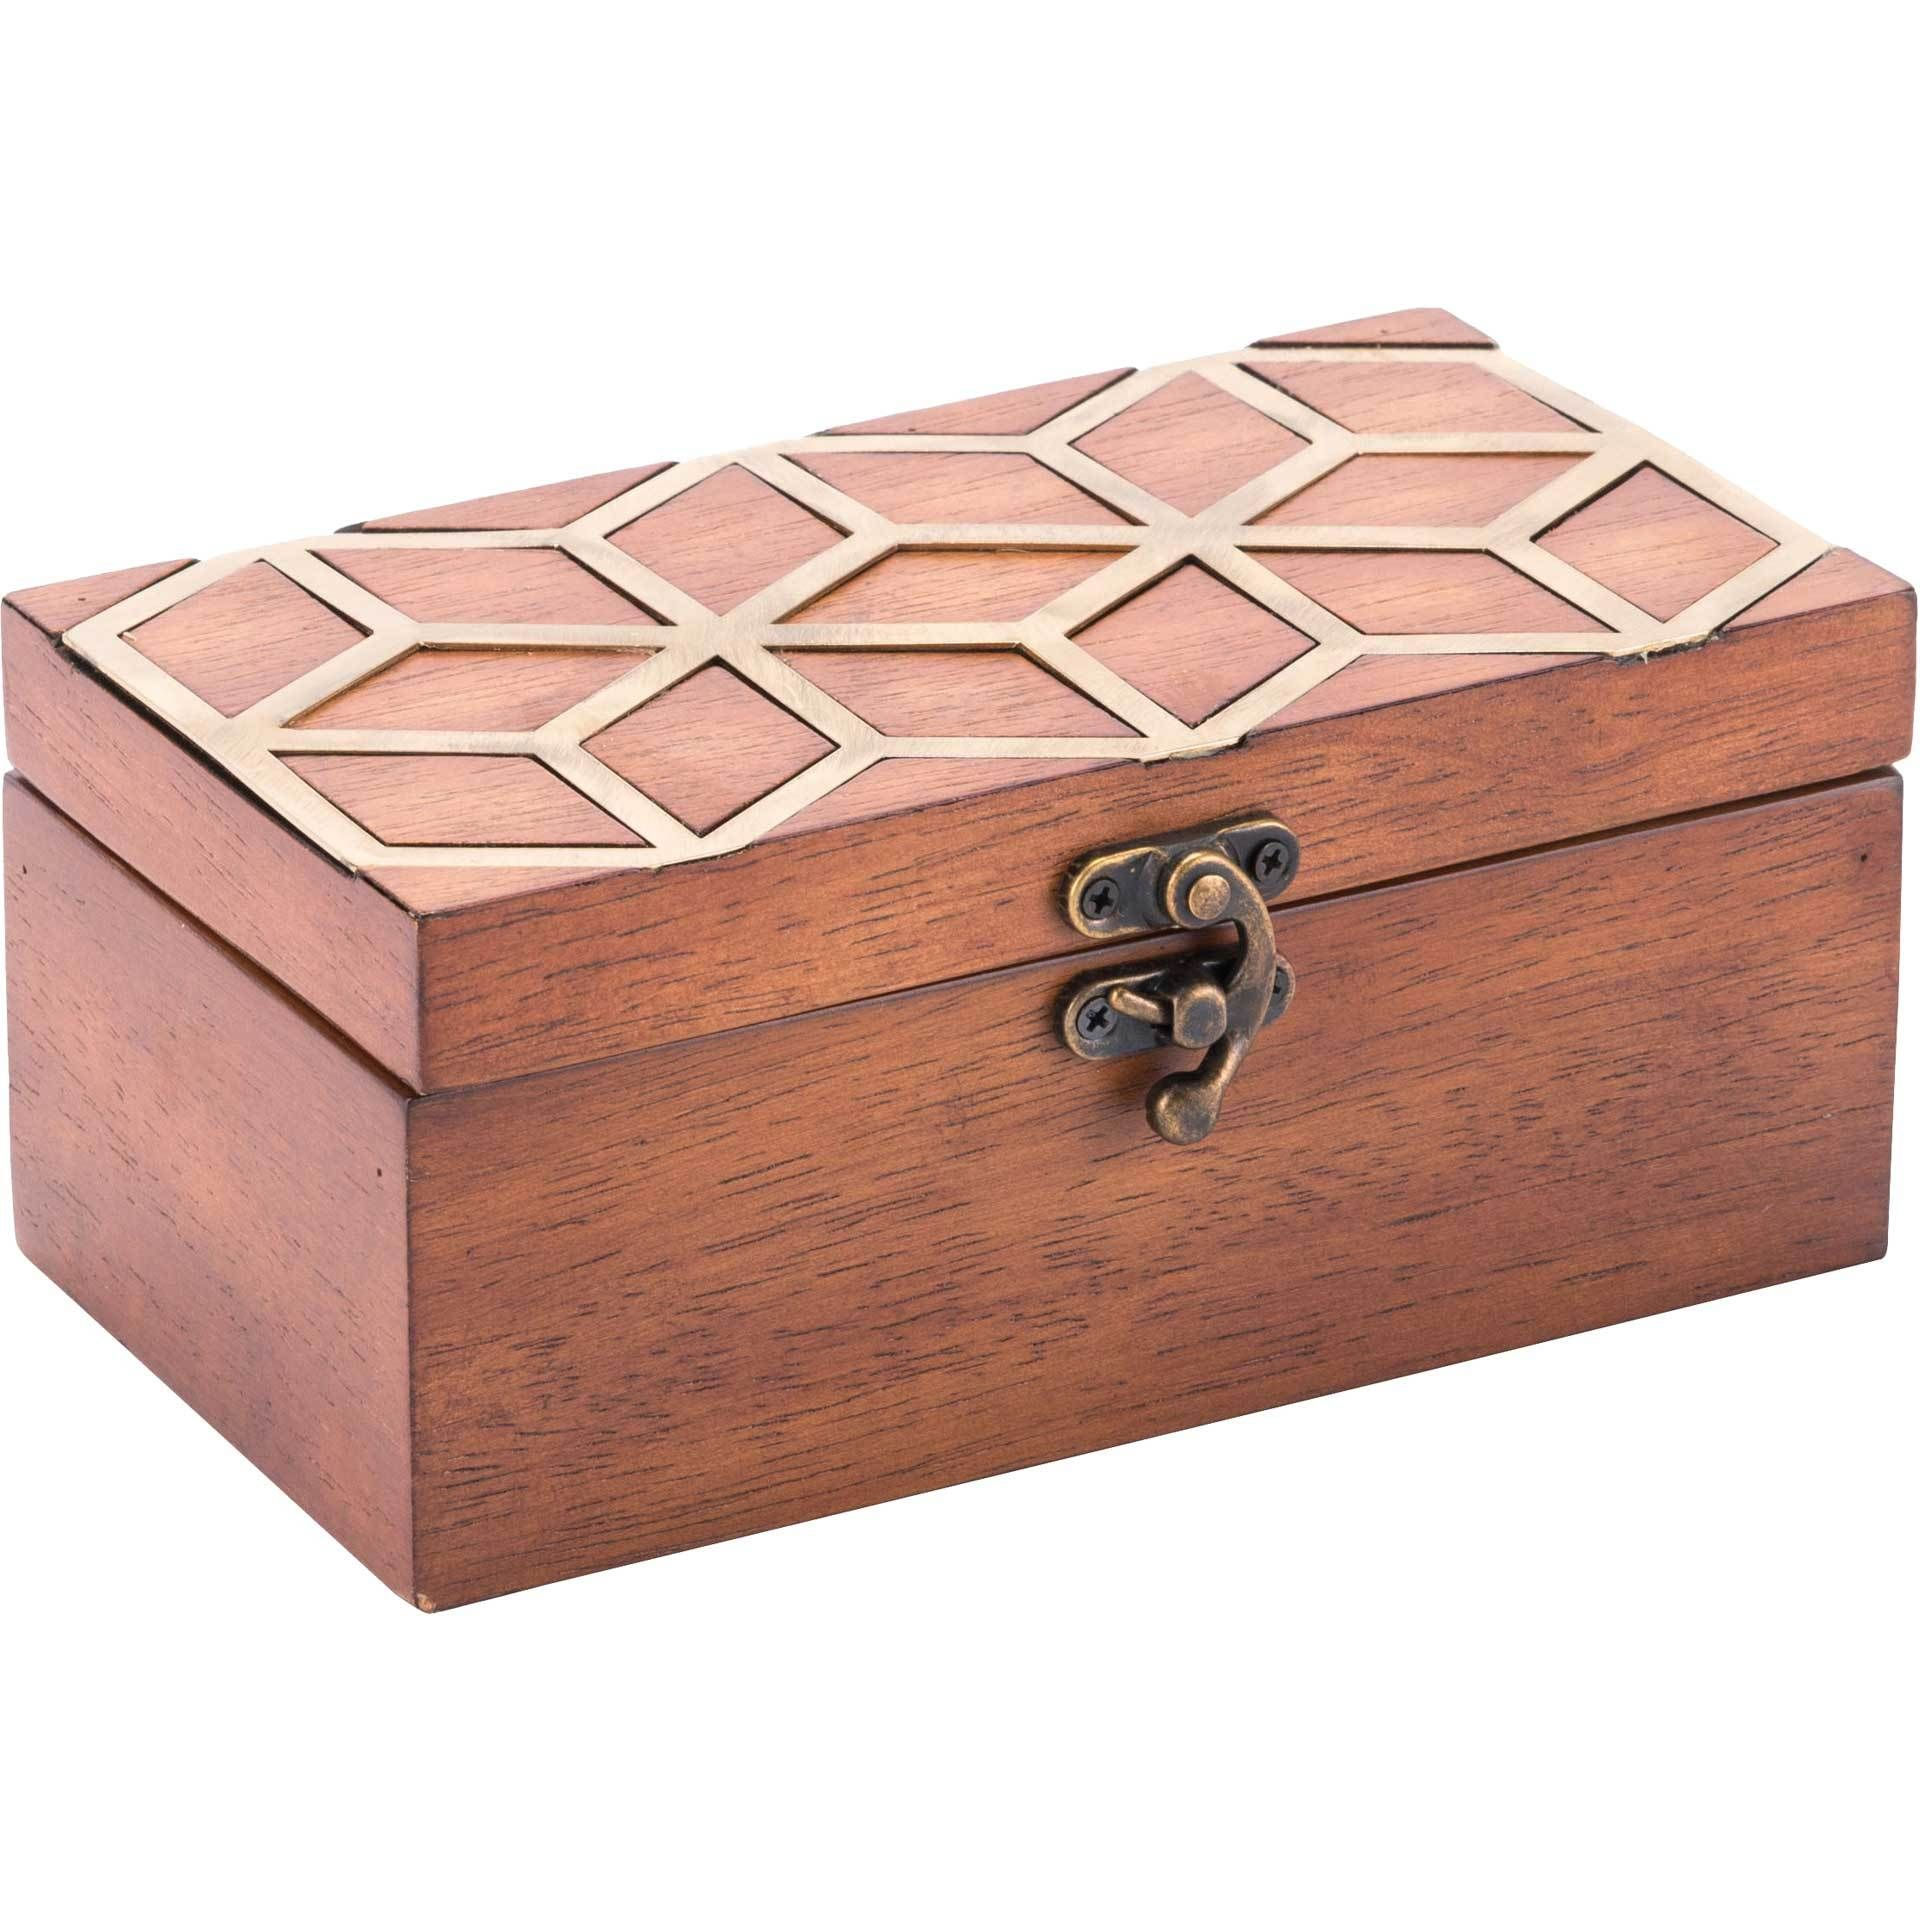 Clover Box Brown In 2021 Decorative Boxes Wooden Jewelry Boxes Wooden Jewelry